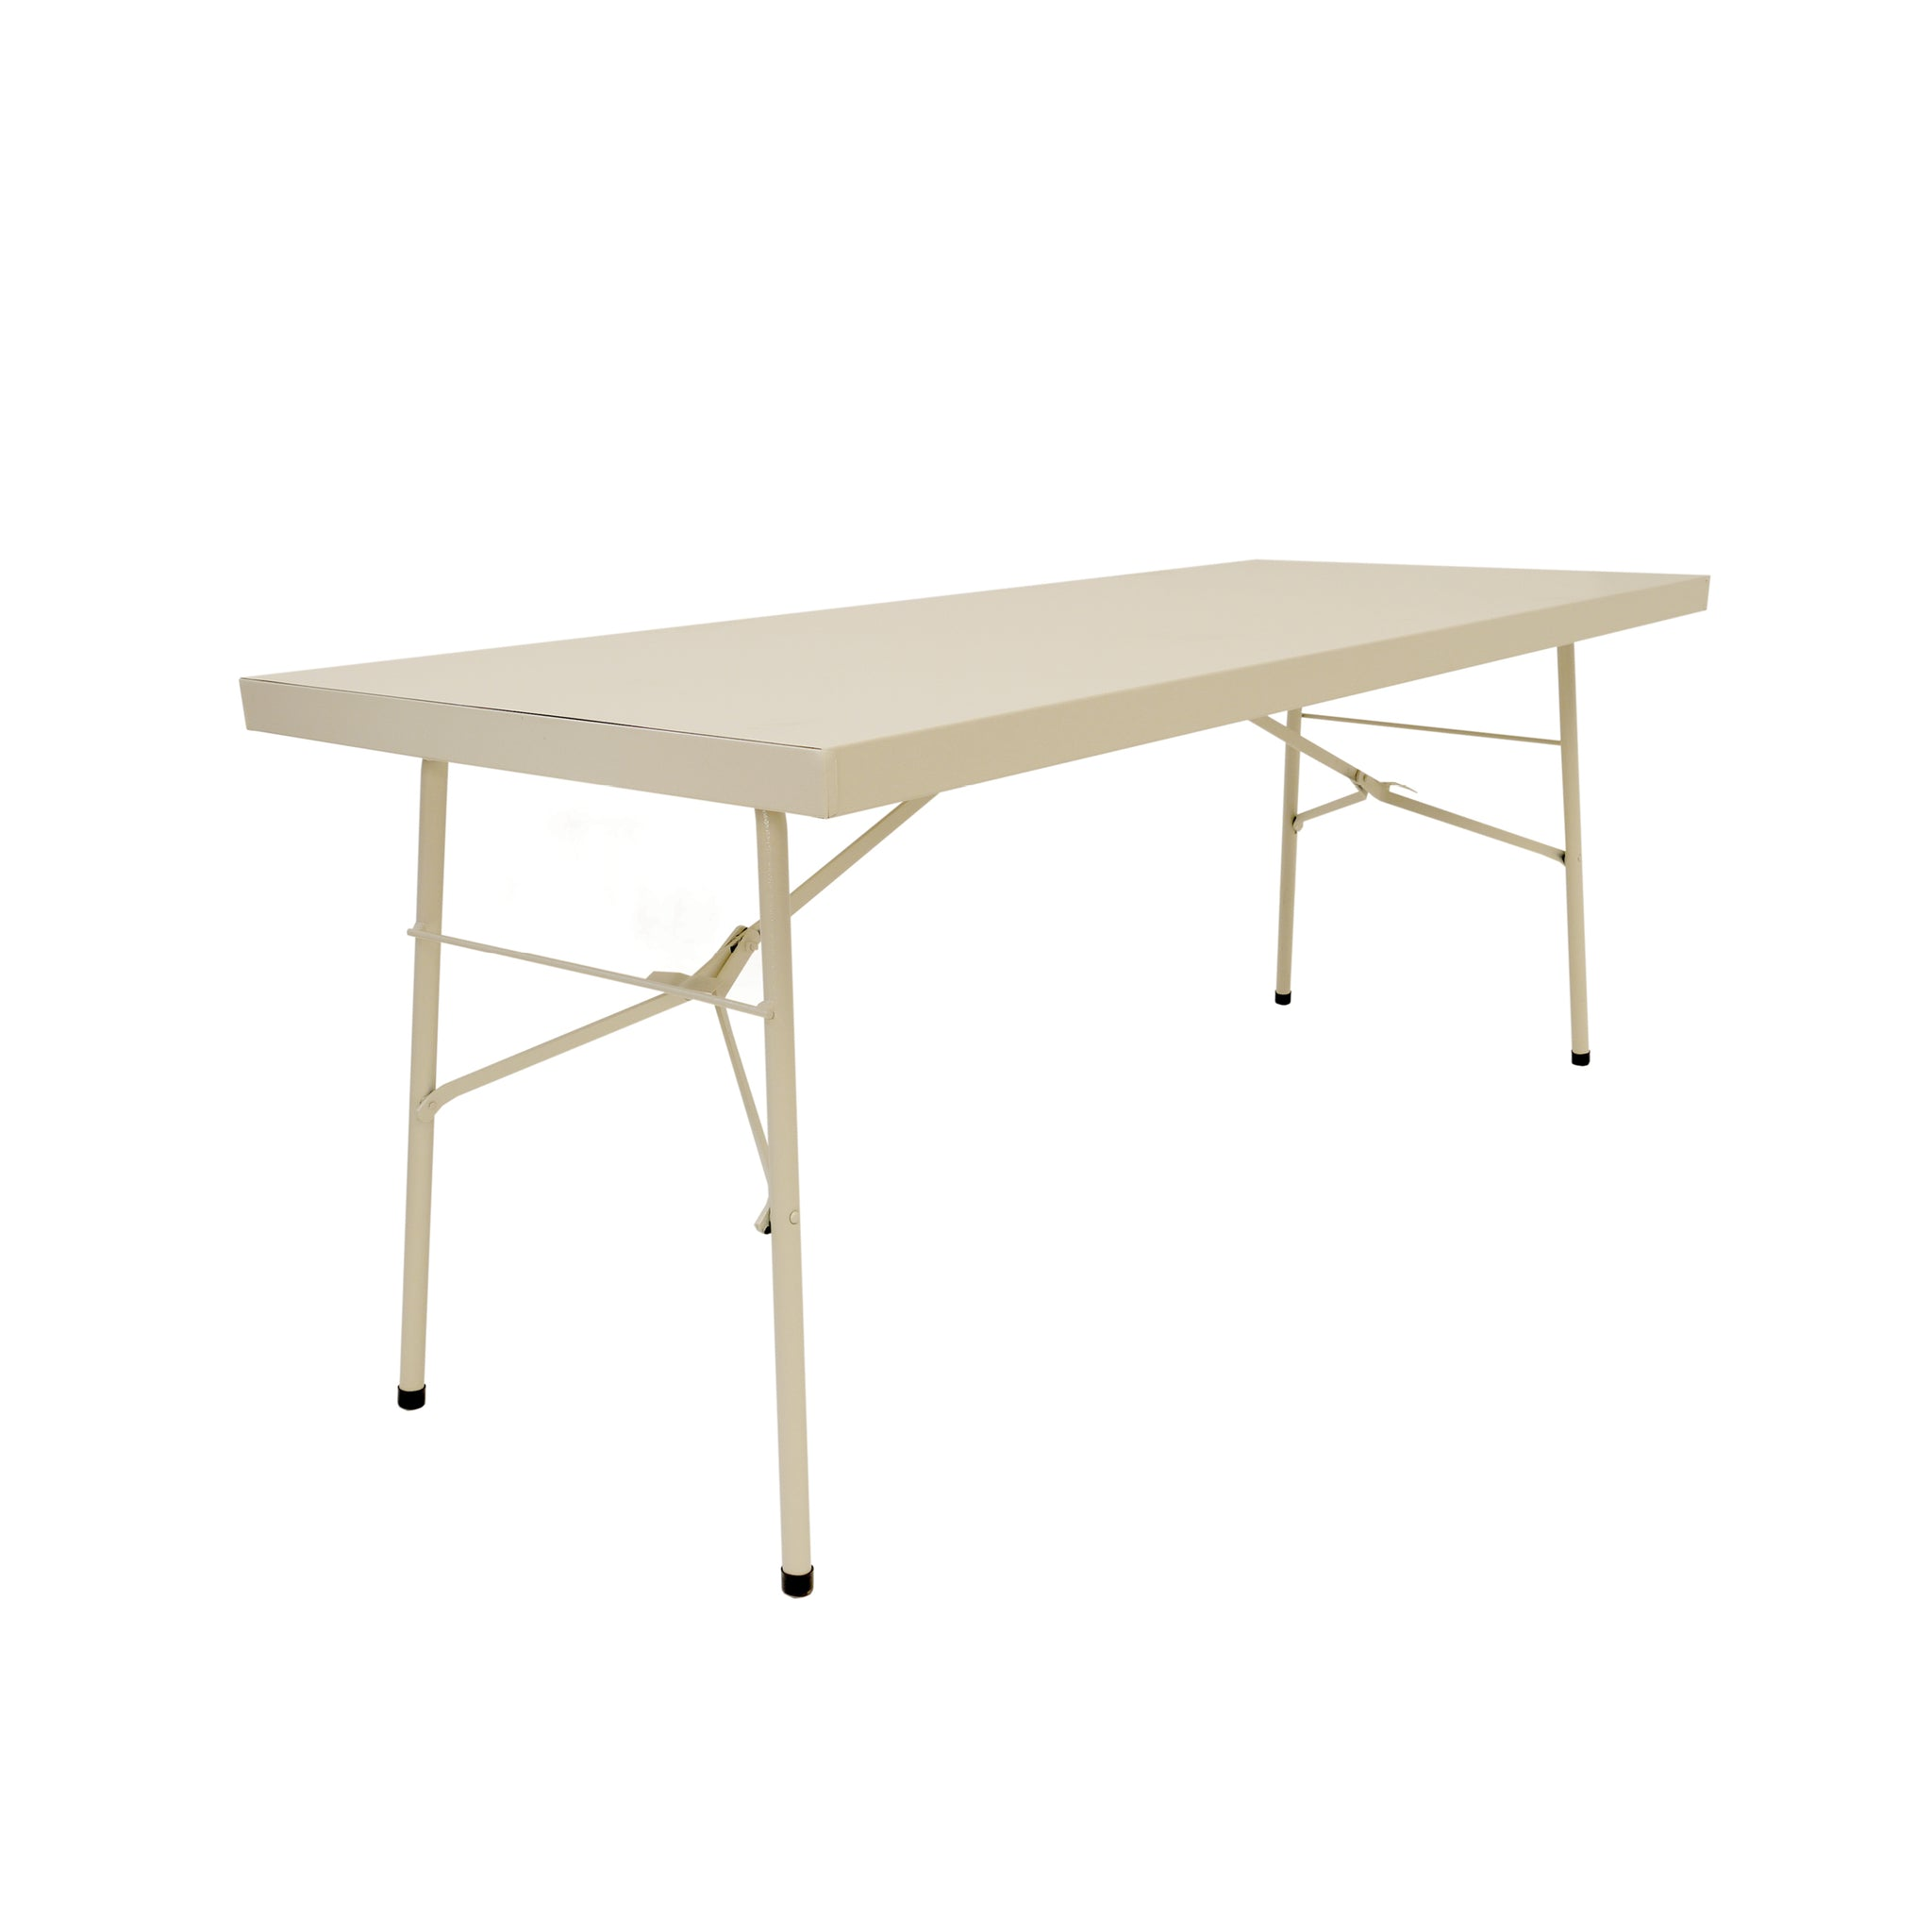 Hedcor metal folding table